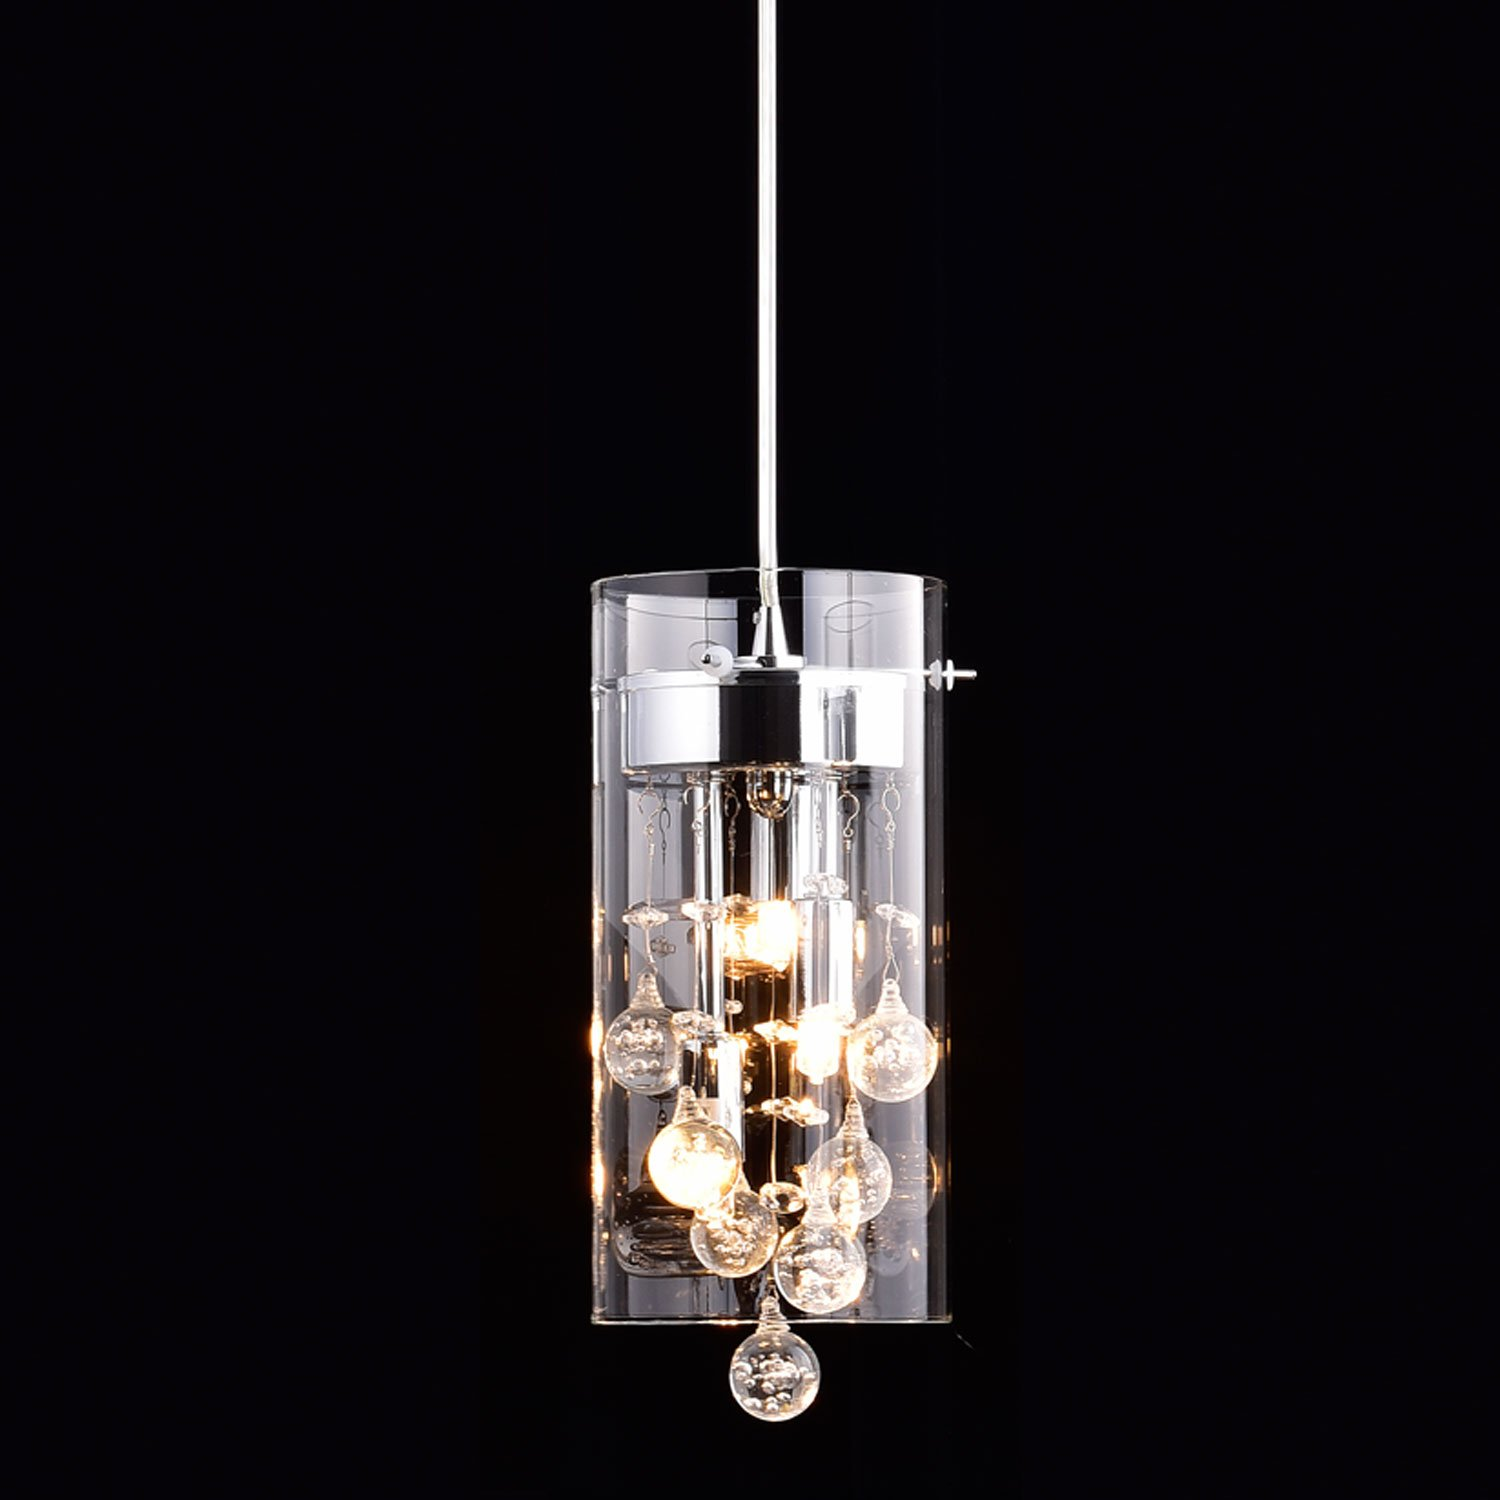 Claxy ecopower lighting glass crystal pendant lighting for Contemporary lighting pendants